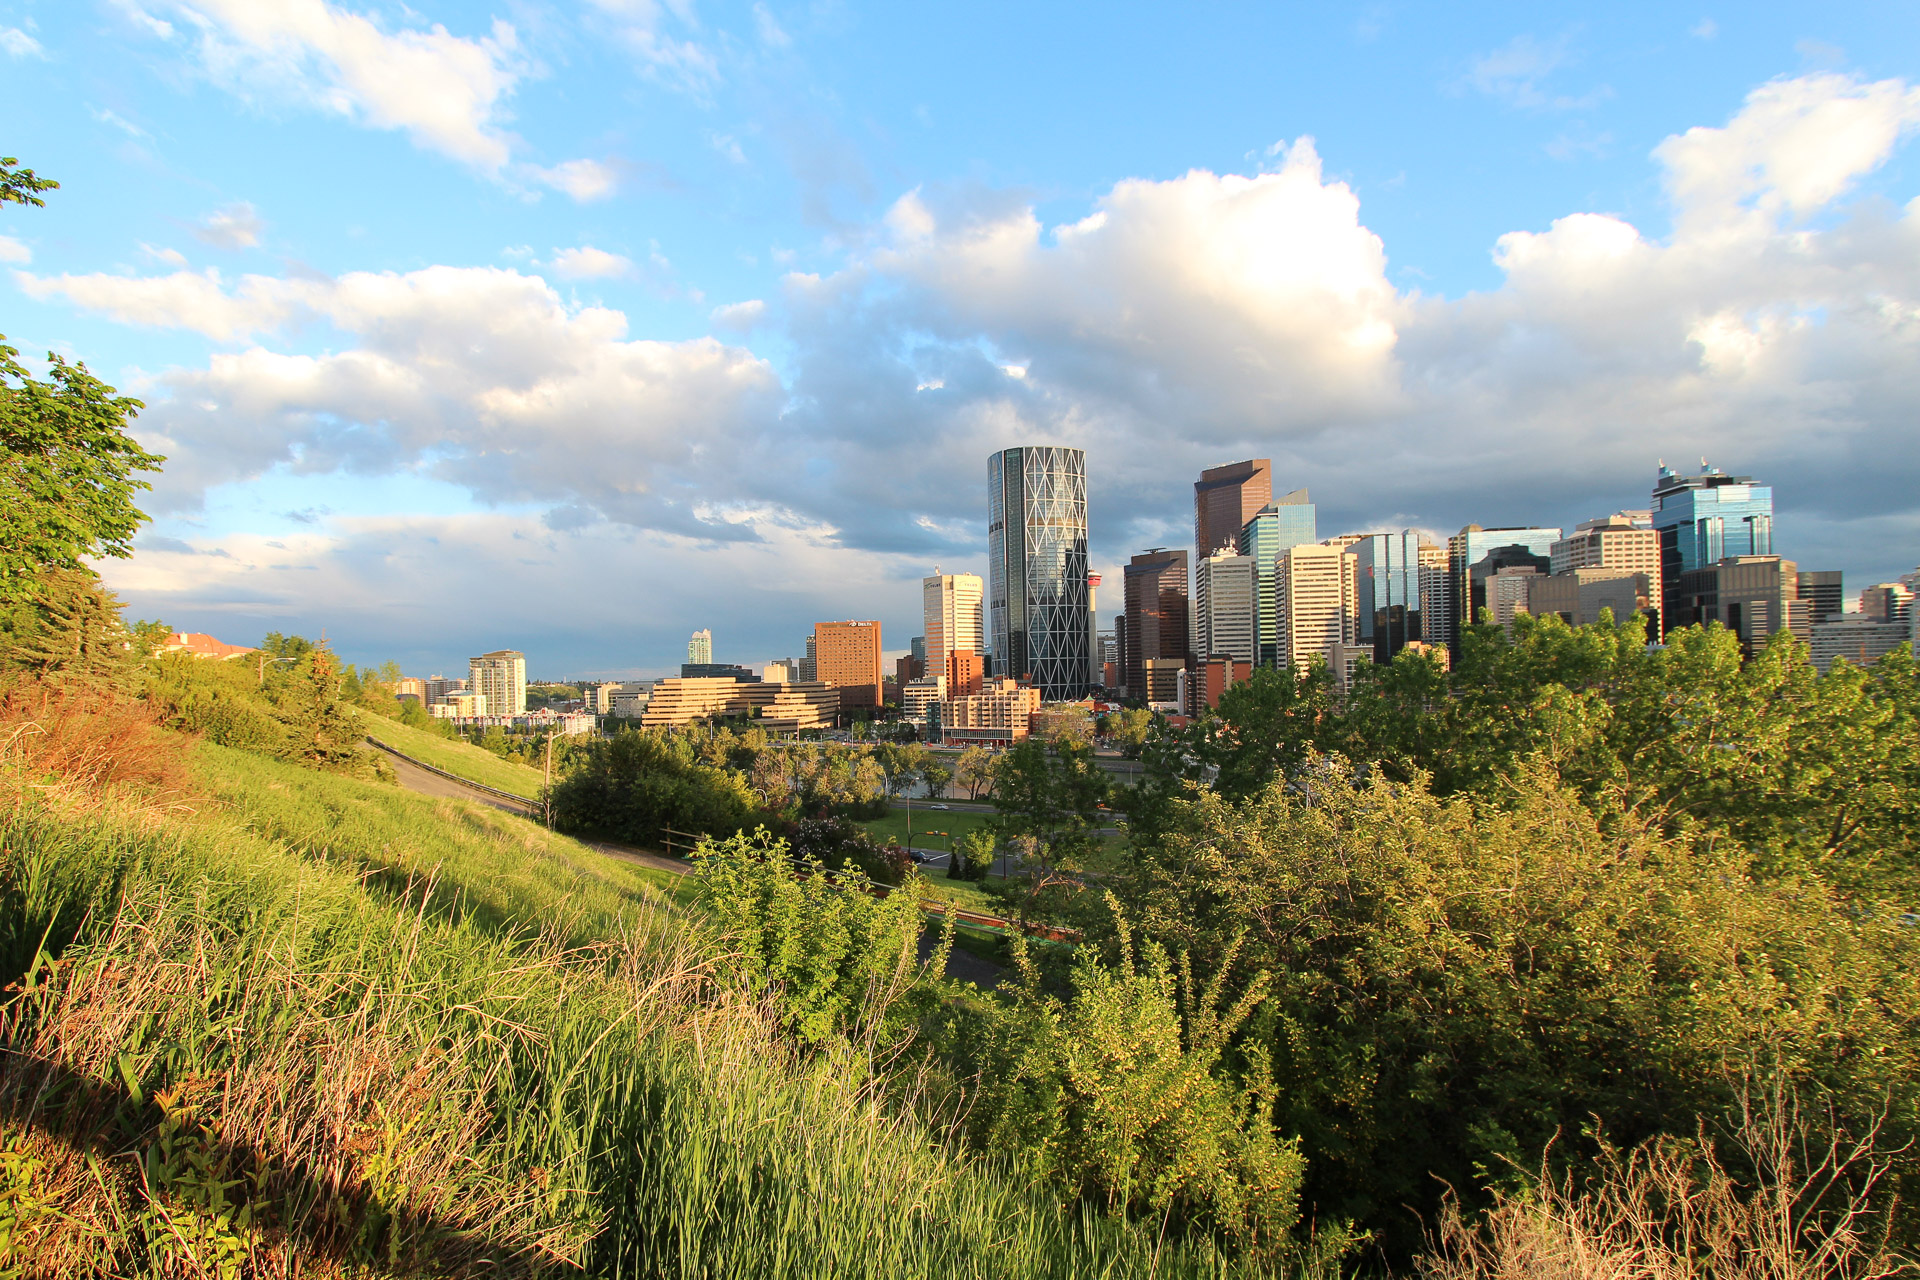 City of Calgary from Rotary Park